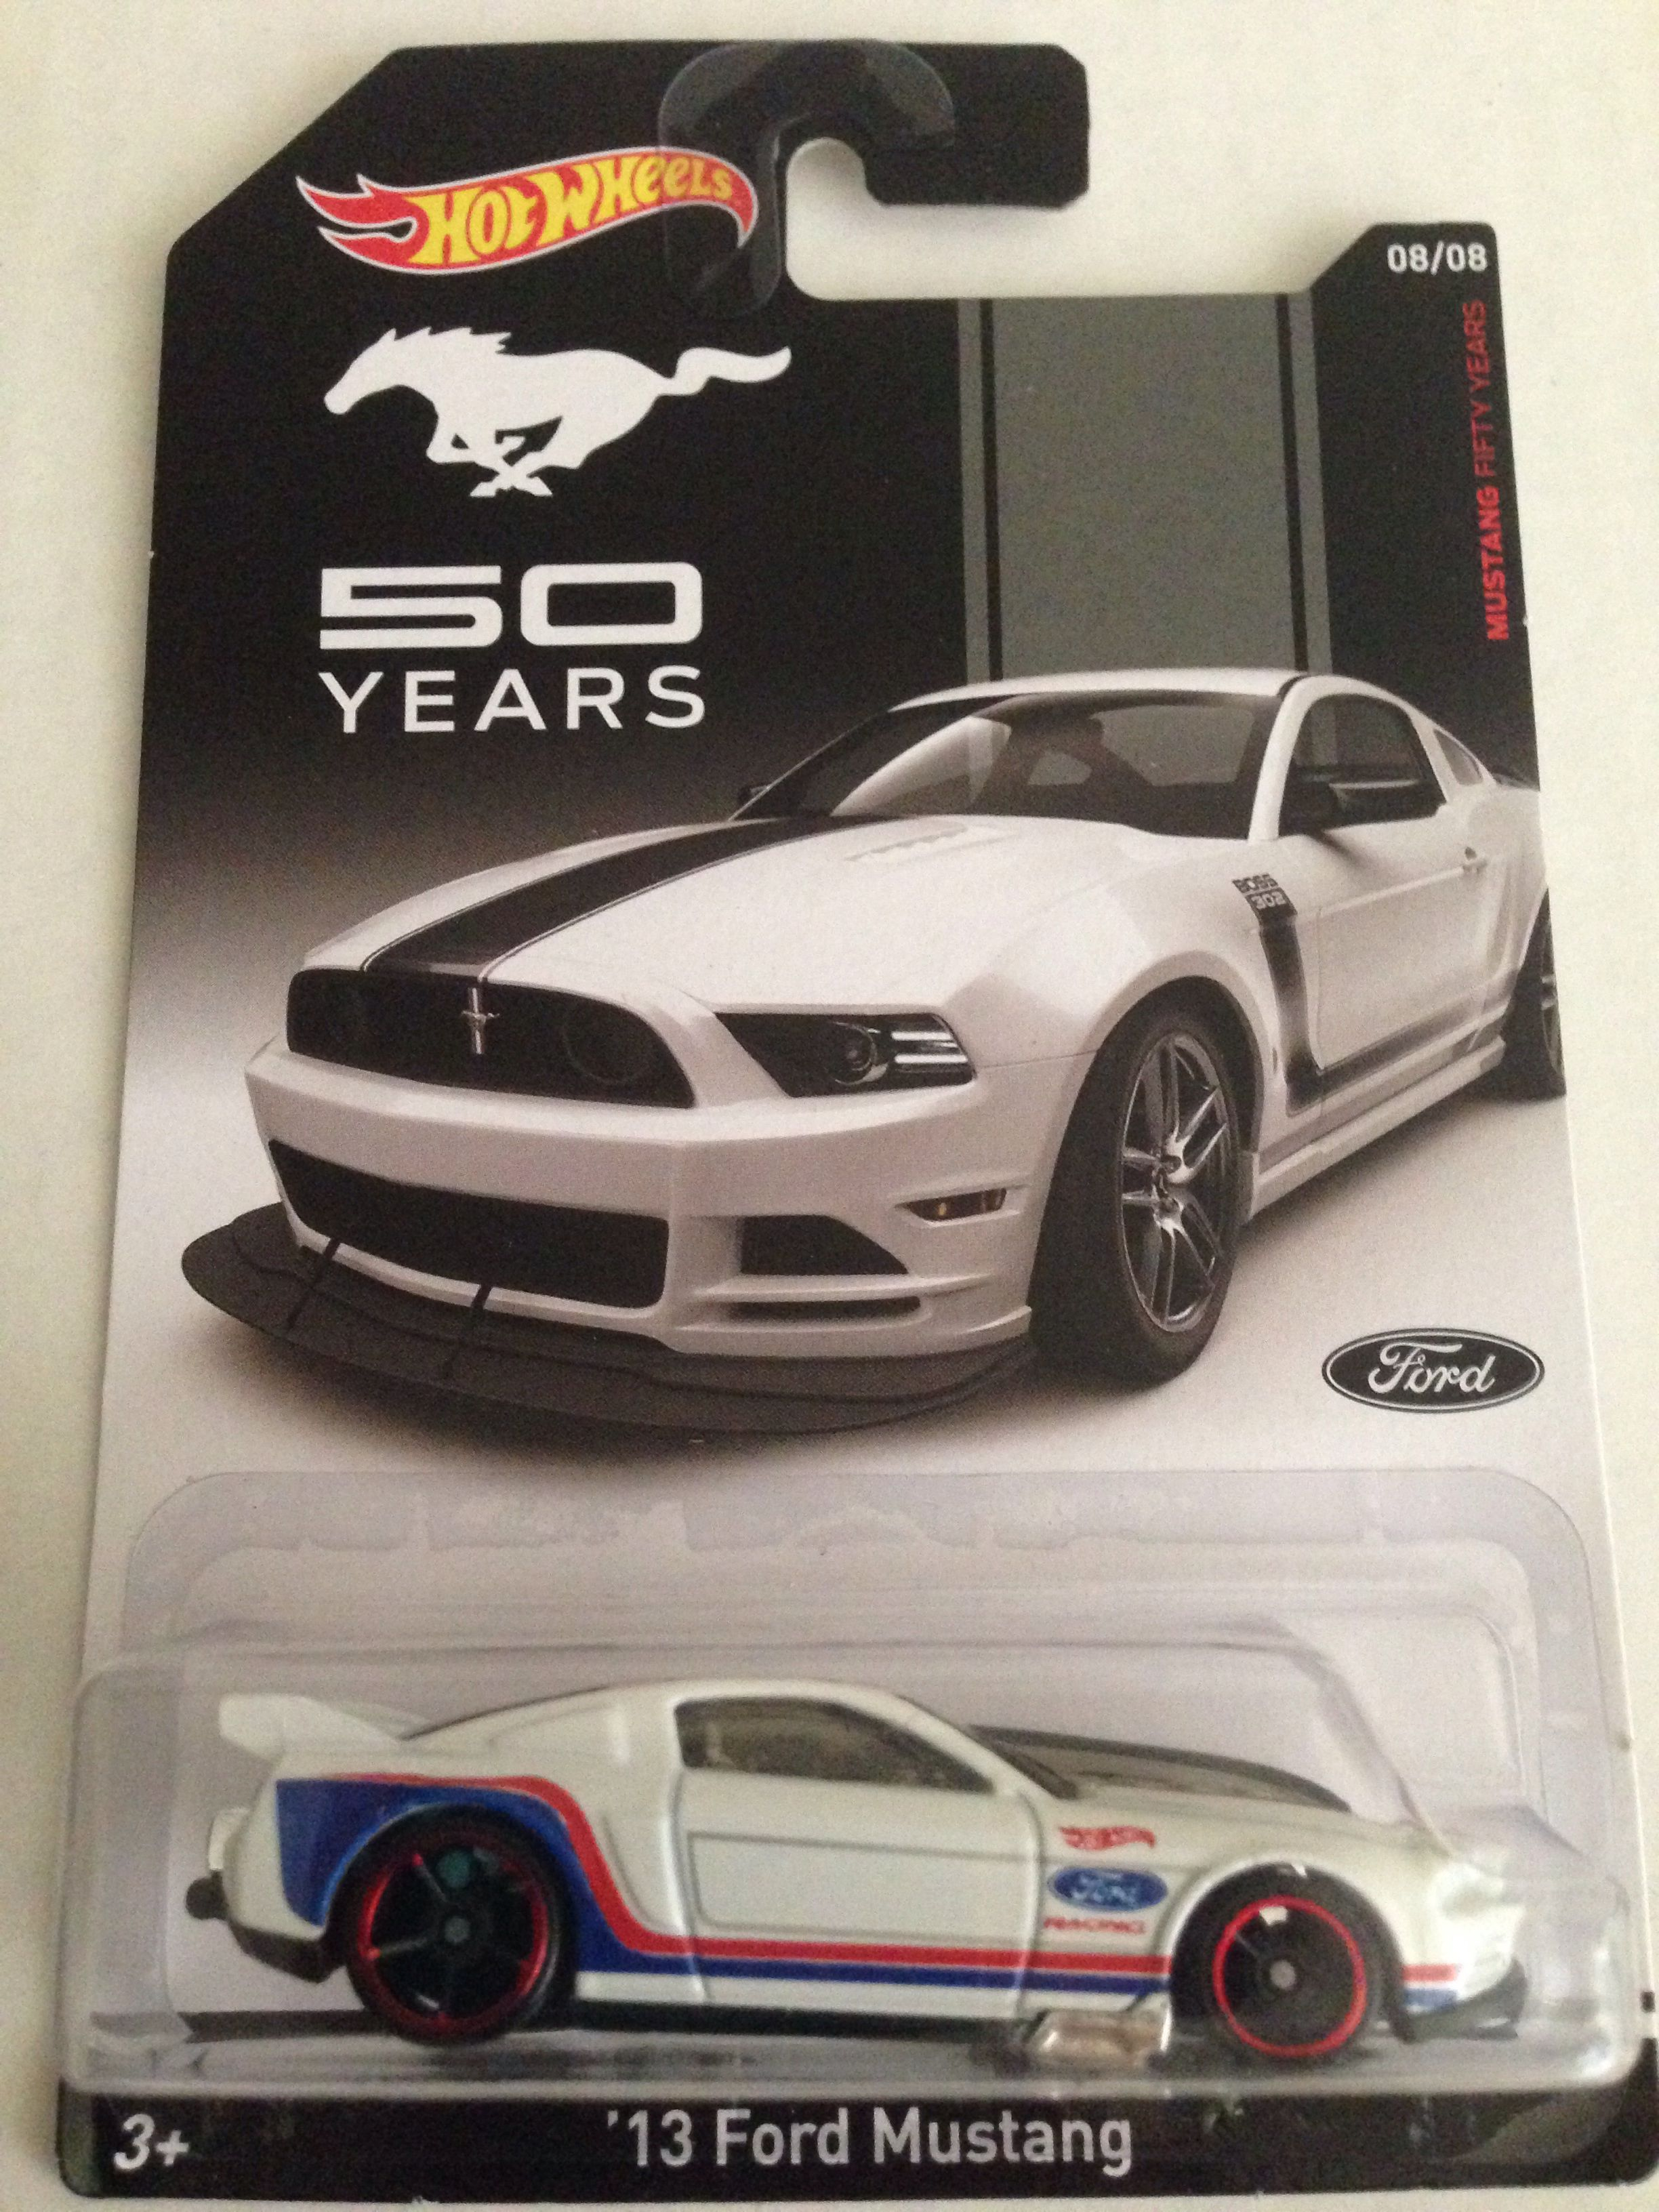 13 Ford Mustang Hot Wheels 2014 Mustang 50 Years 8 8 Hot Wheels Mustang Hot Wheels Mustang